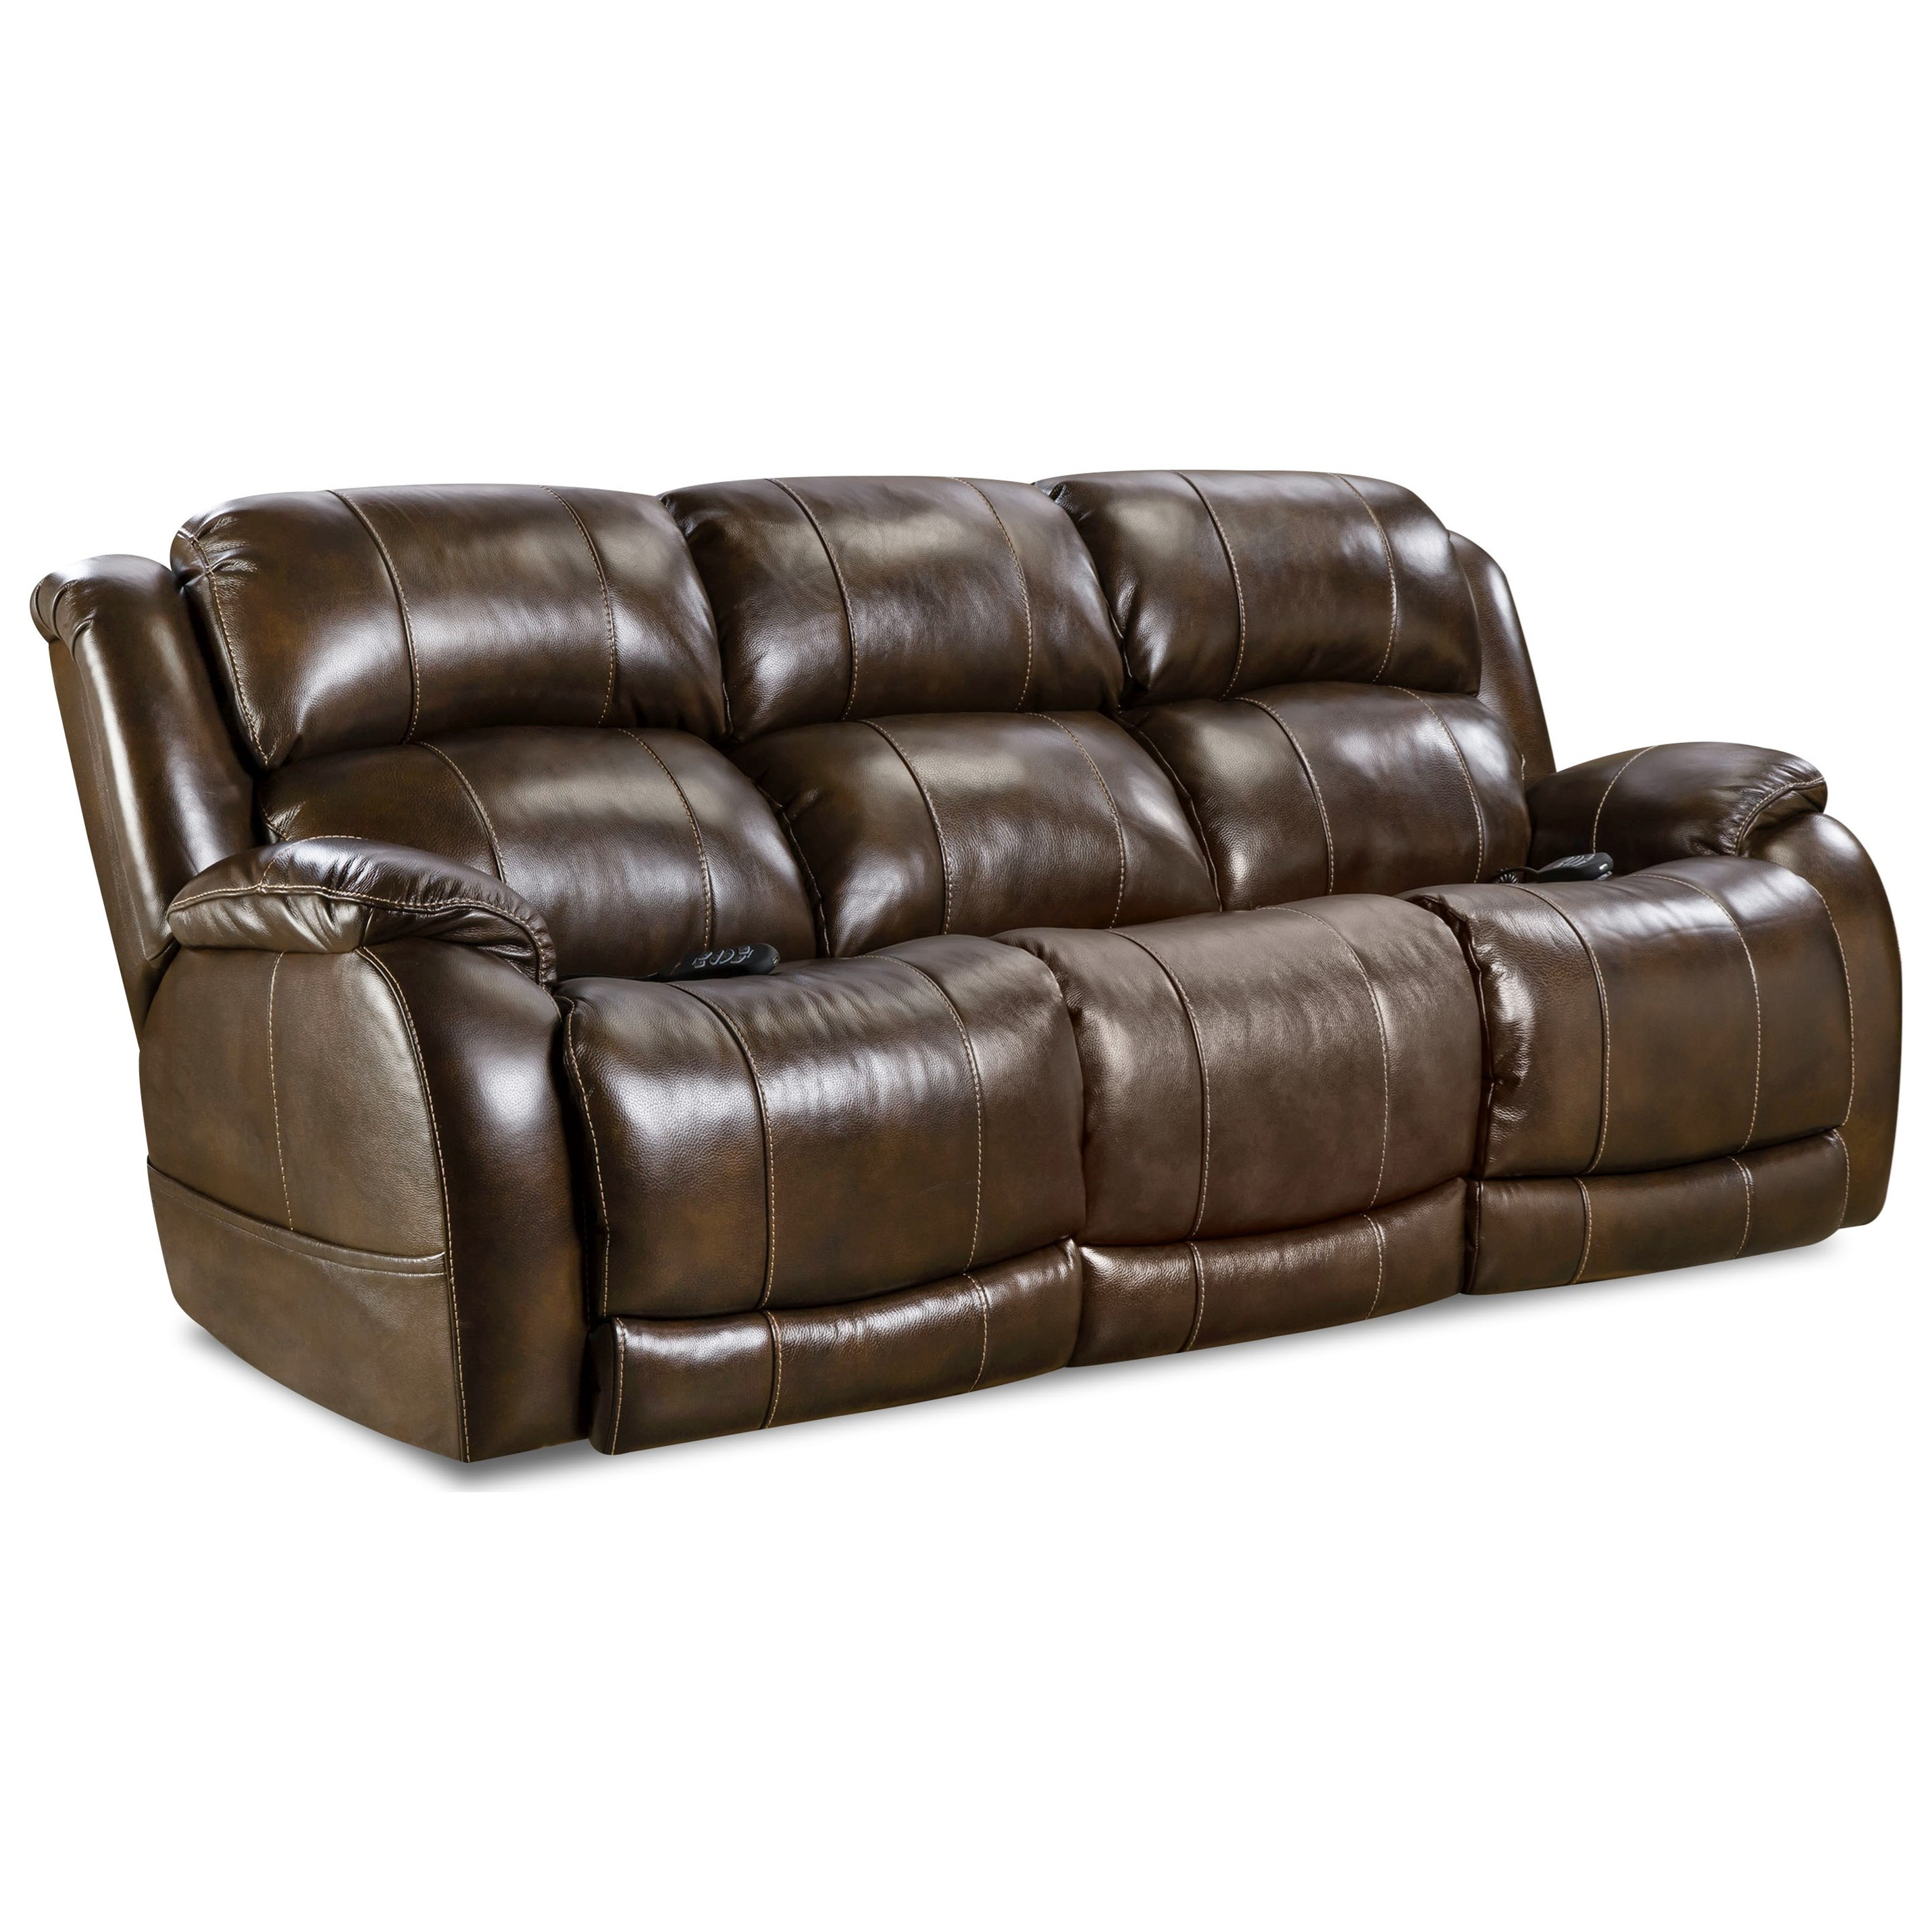 HomeStretch 170 Collection Double Reclining Power Sofa - Item Number: 170-37-21